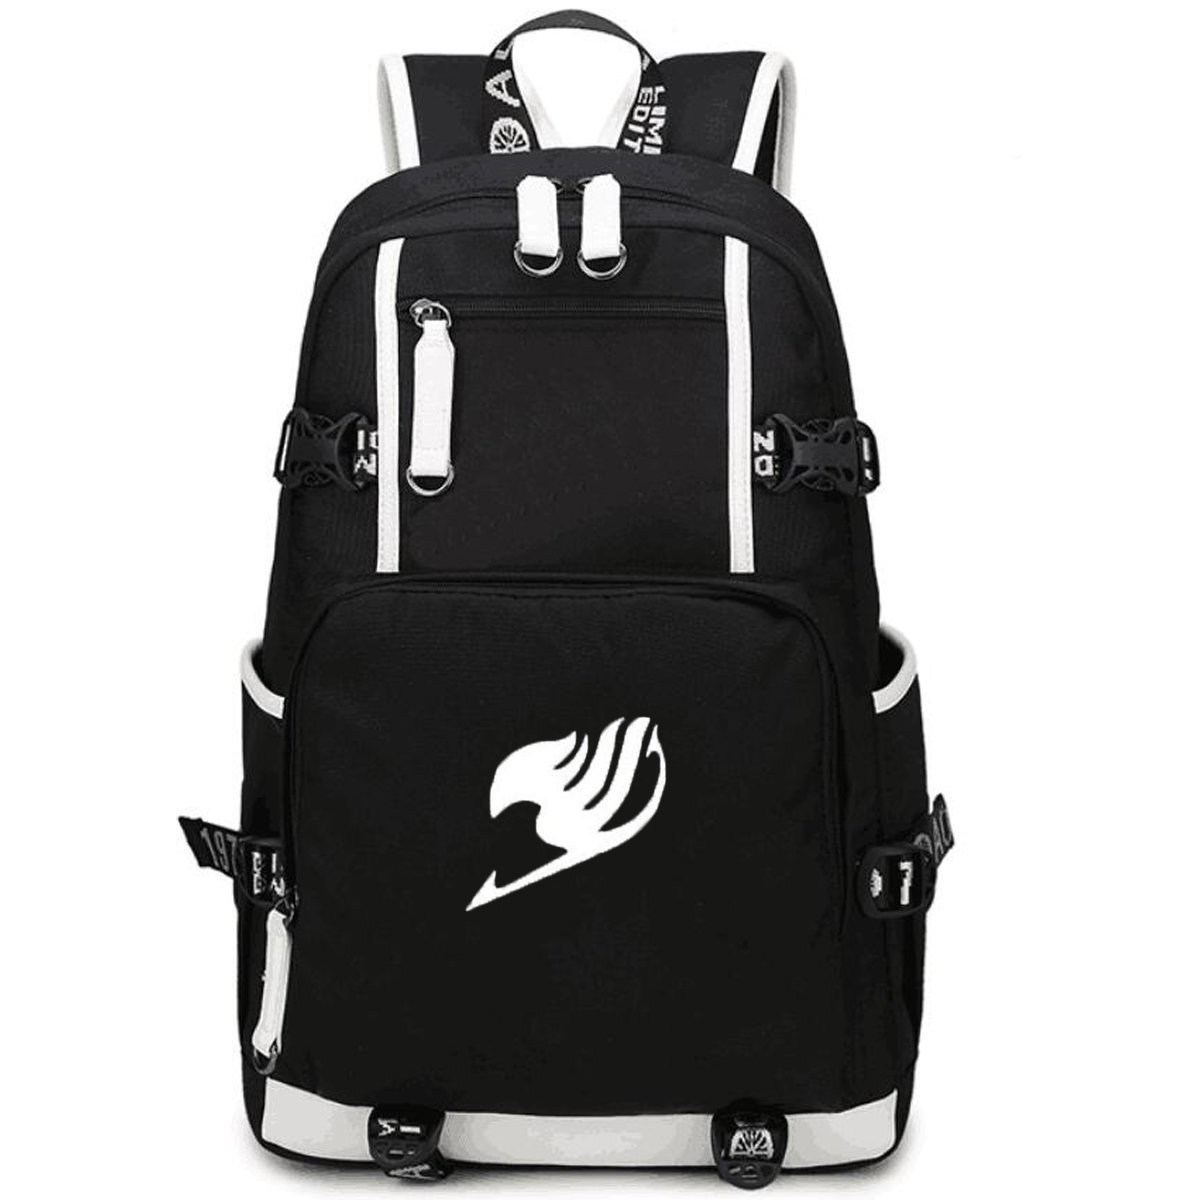 80c51aed38 Nsoking hot anime fairy tail cosplay school student travel backpack bag  length height width clothing jpg